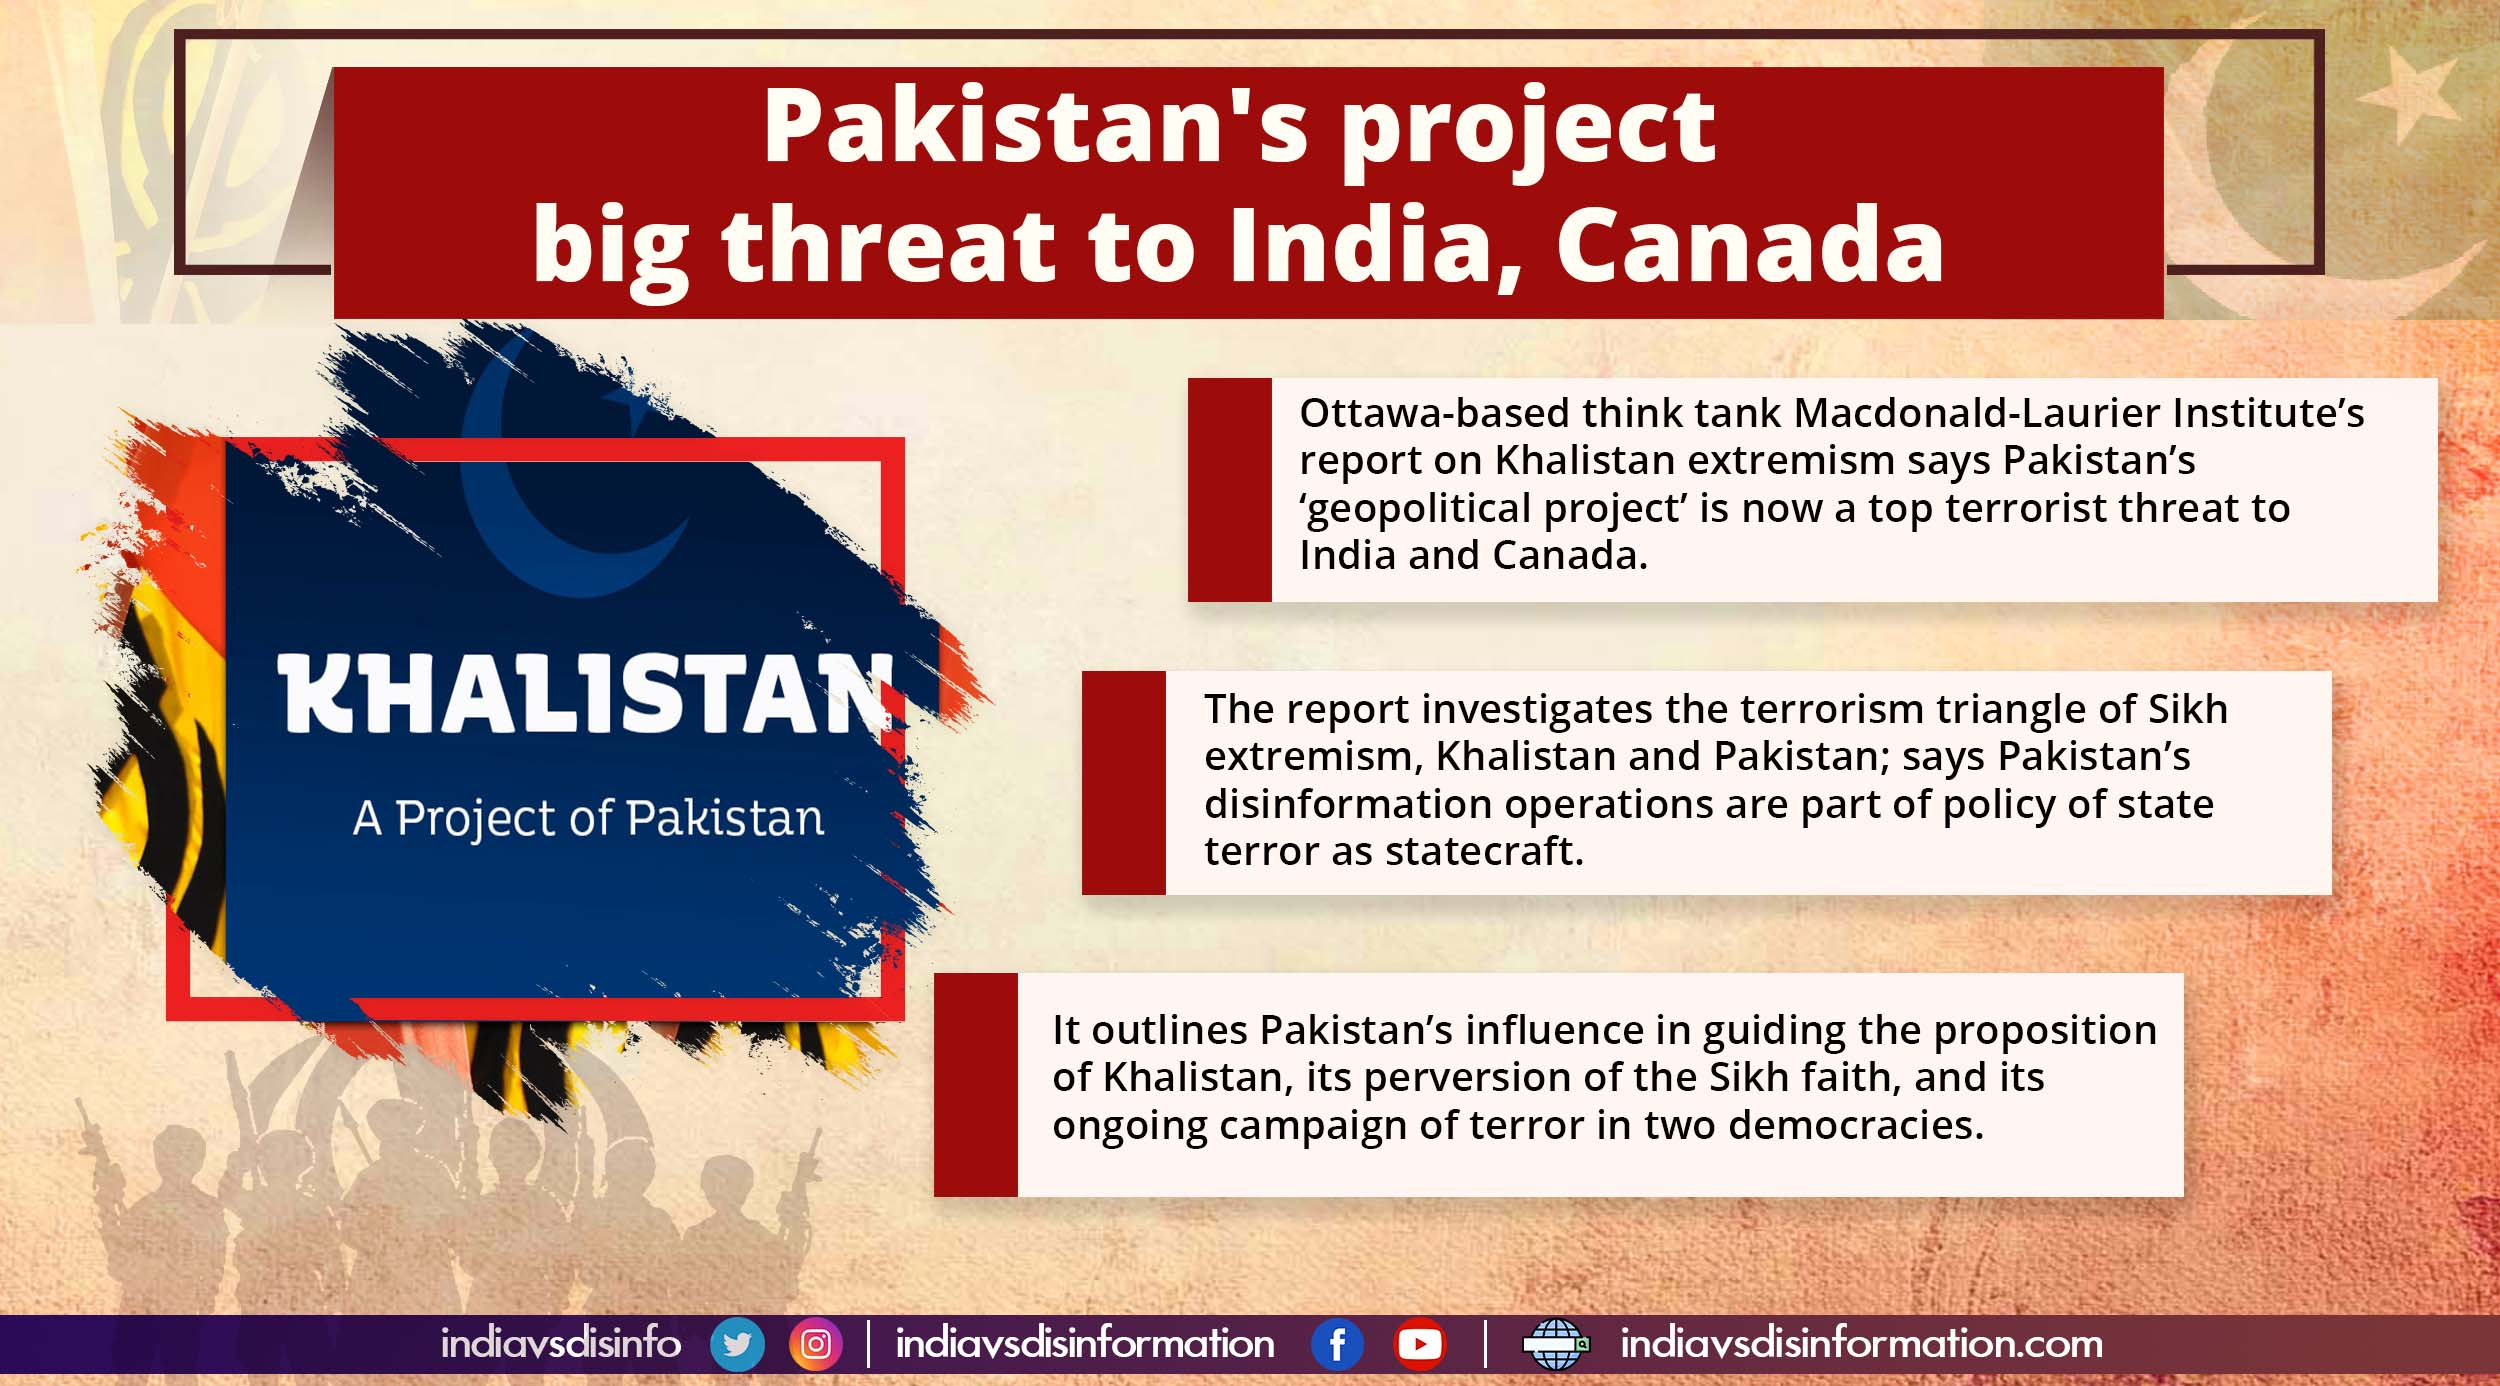 Khalistan a 'pet project' of Pakistan, says Canadian think tank